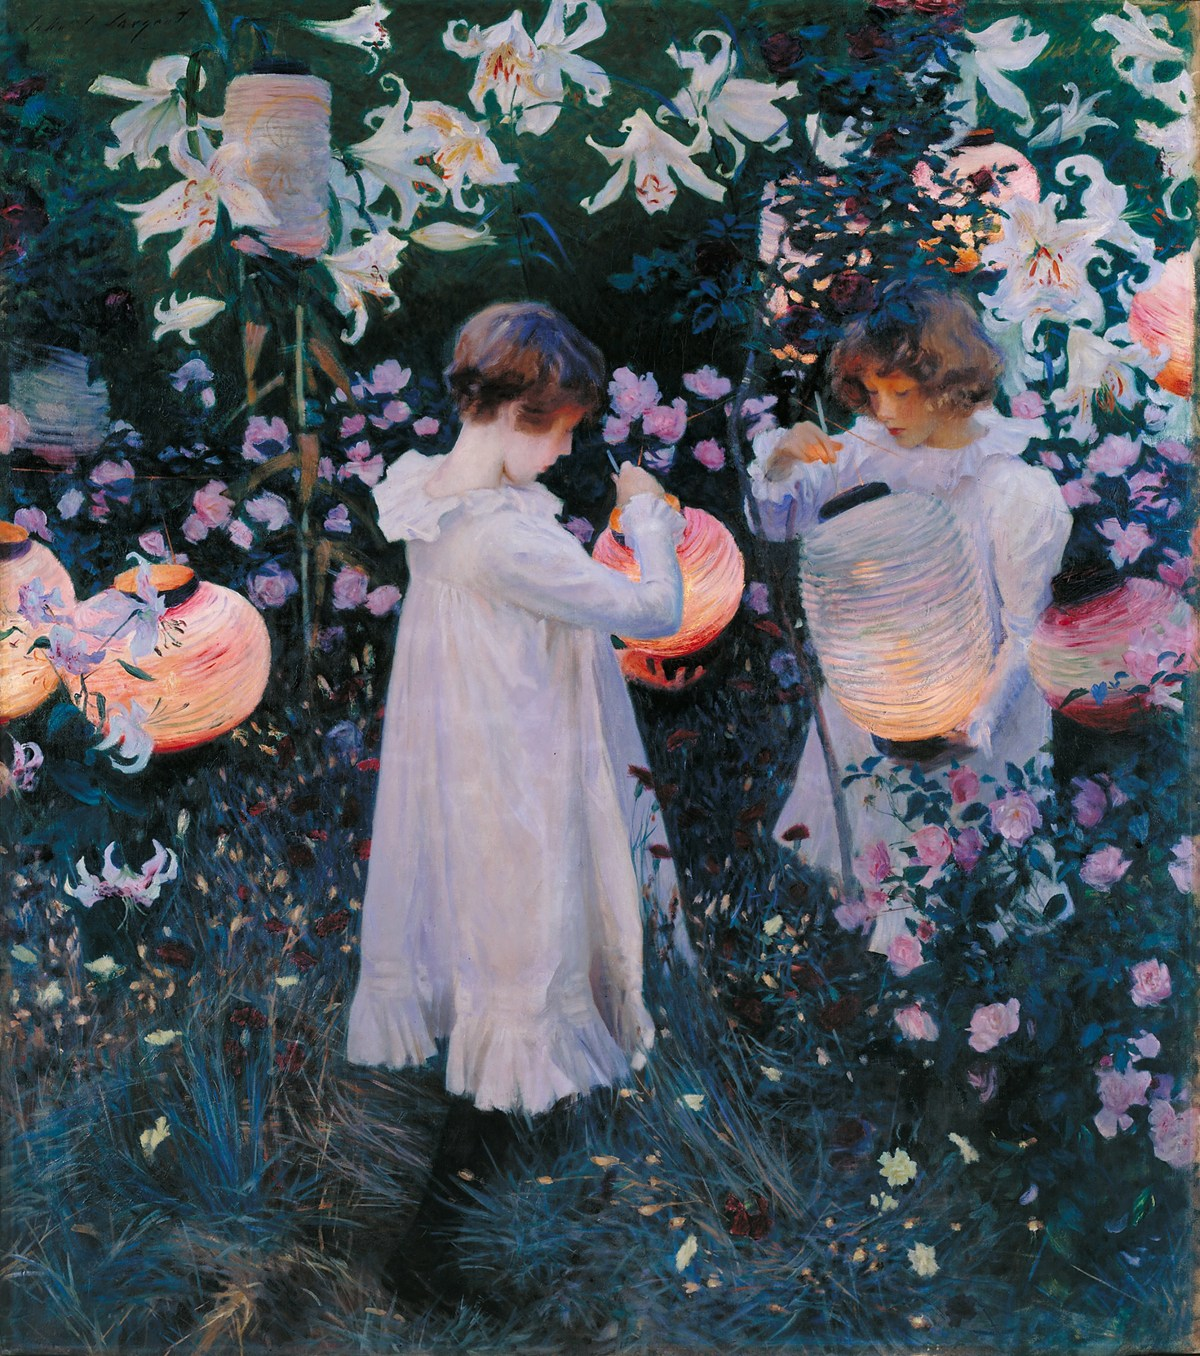 John_Singer_Sargent_-_Carnation,_Lily,_Lily,_Rose_-_Google_Art_Project